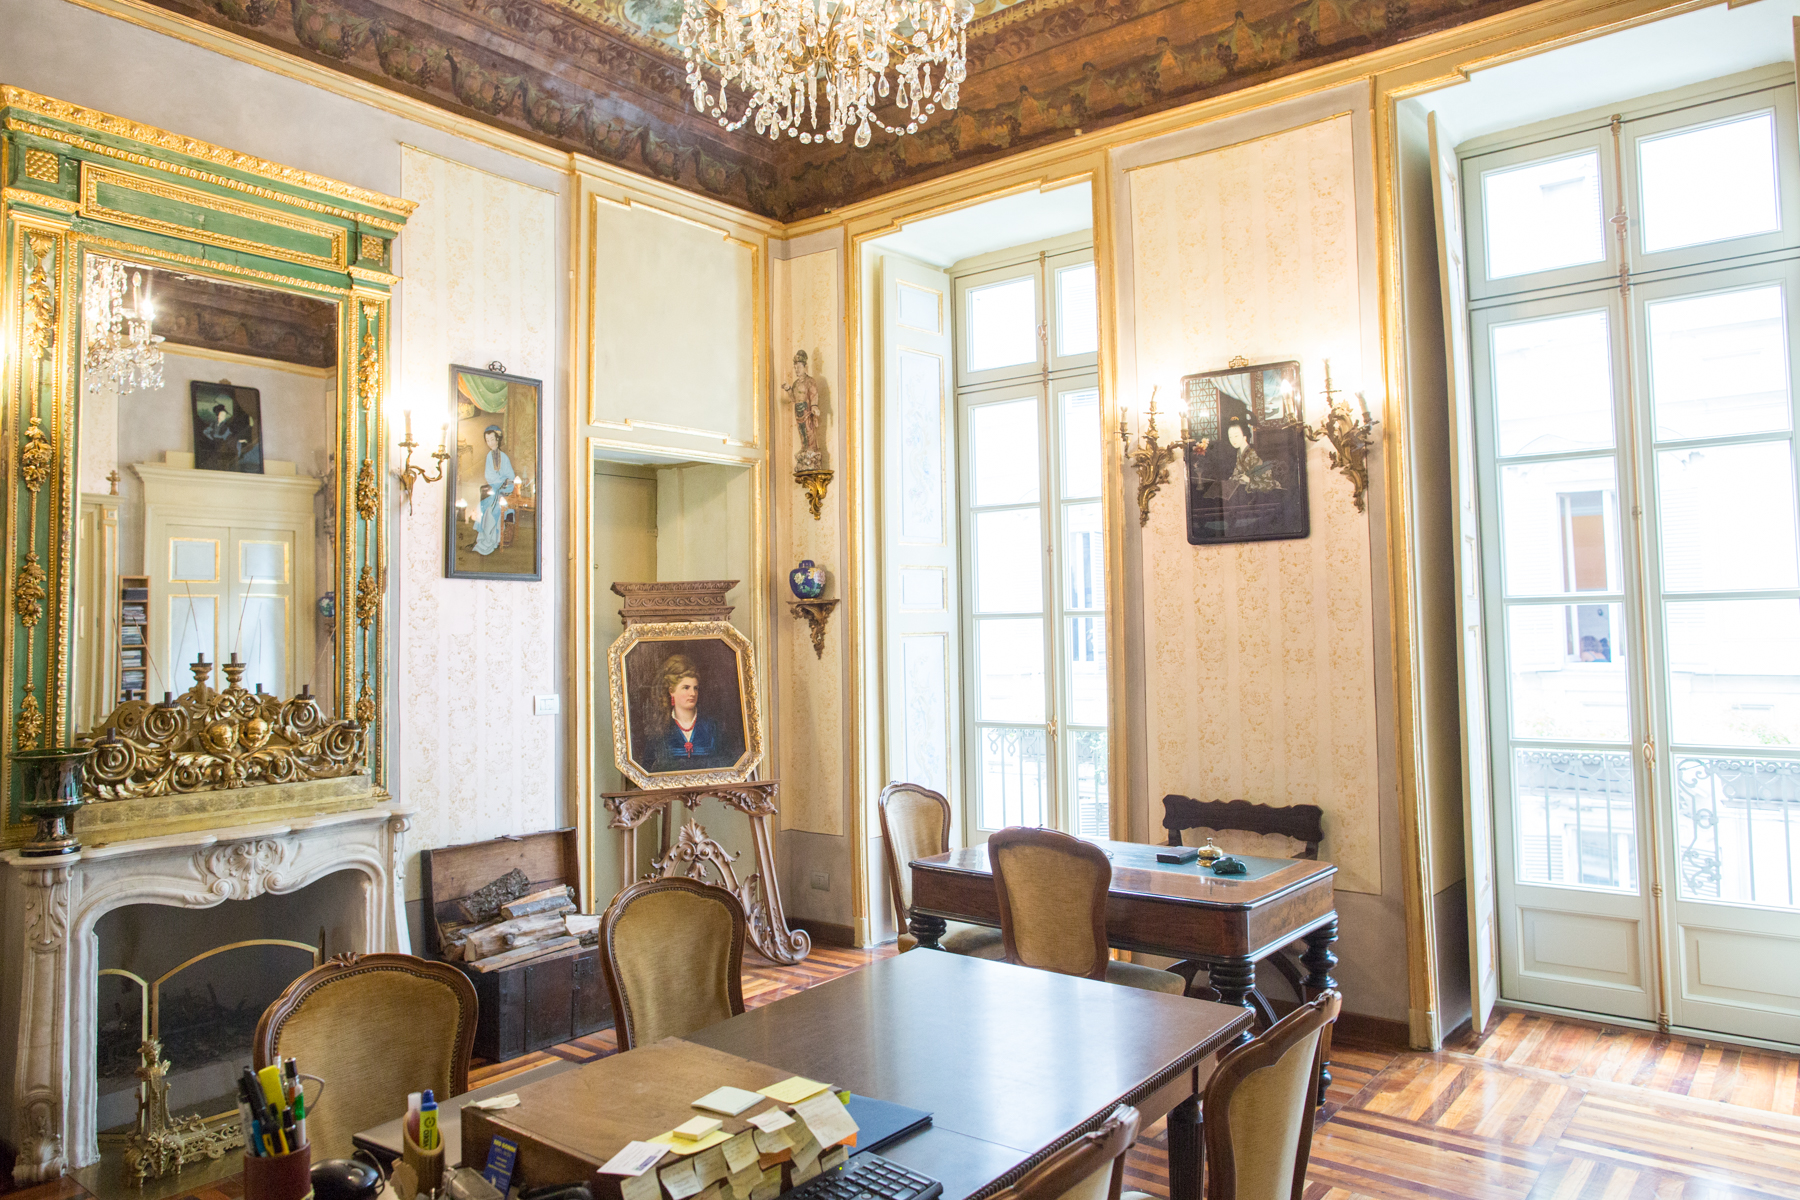 Additional photo for property listing at Elegant and fascinating apartment in the historical center of Turin Via Conte Verde 1 Turin, Turin 10122 Italy